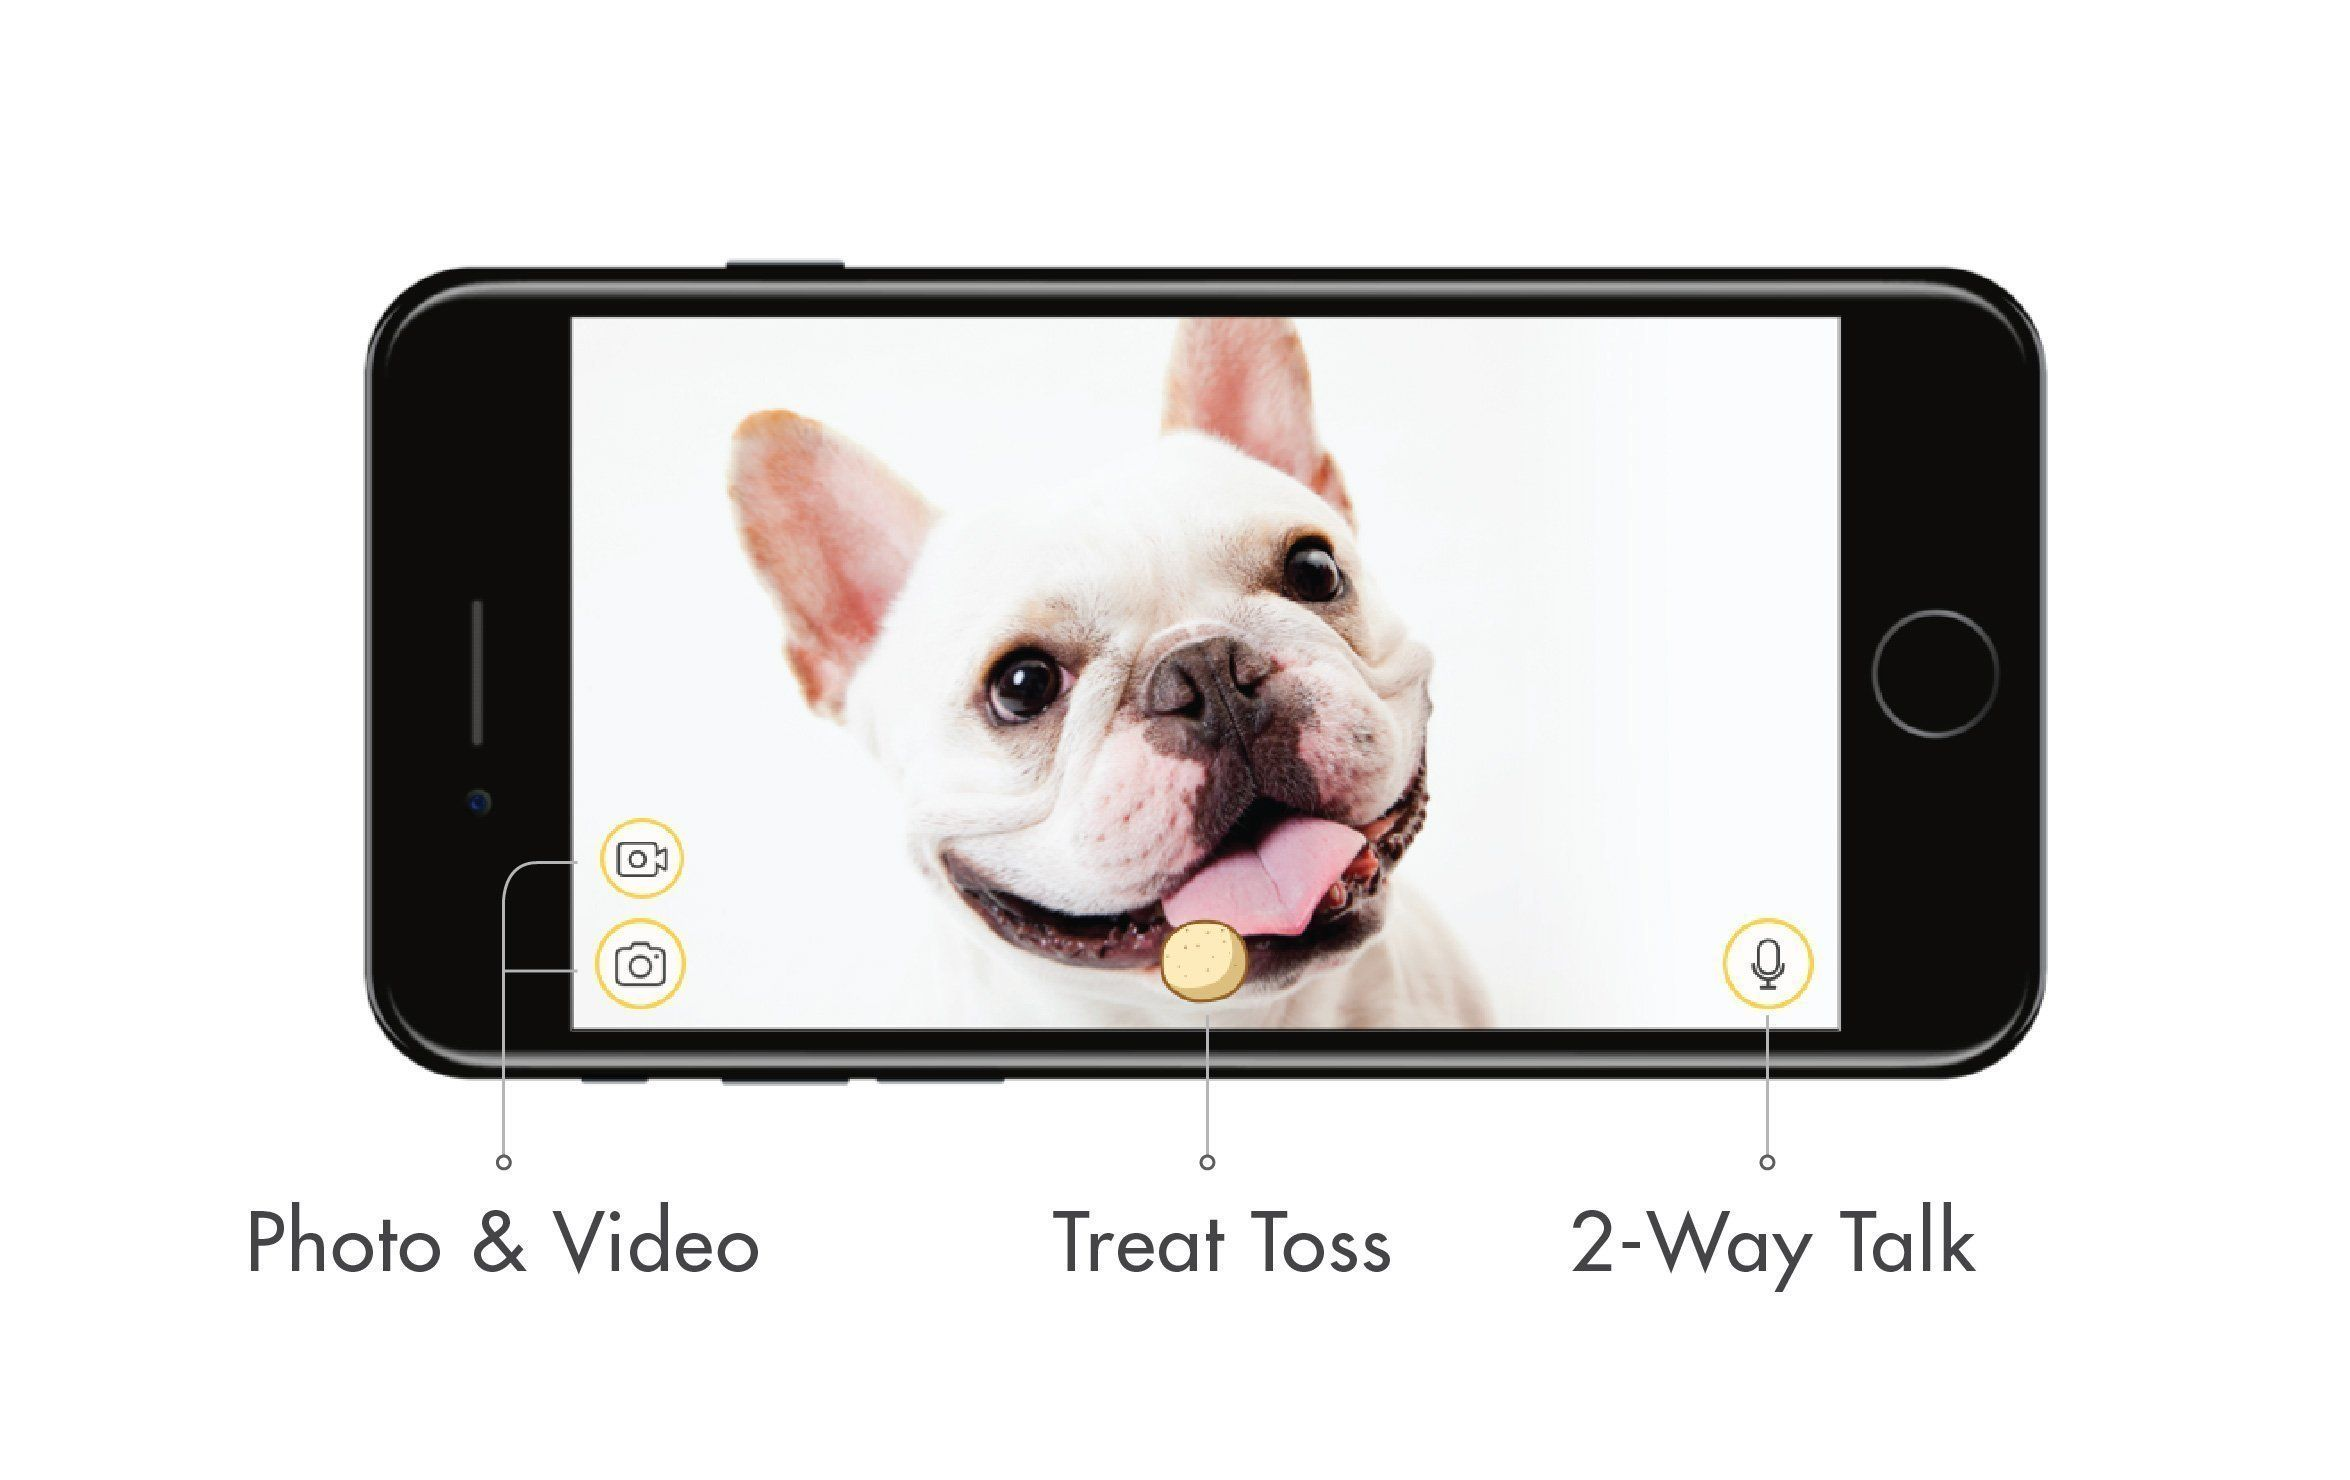 Furbo Dog Camera Treat Tossing Full Hd Wifi Pet Camera And 2way Audio Designed For Dogs Works With Amazon Alexa As Seen On Ellen Pet Camera Dog Words Dogs